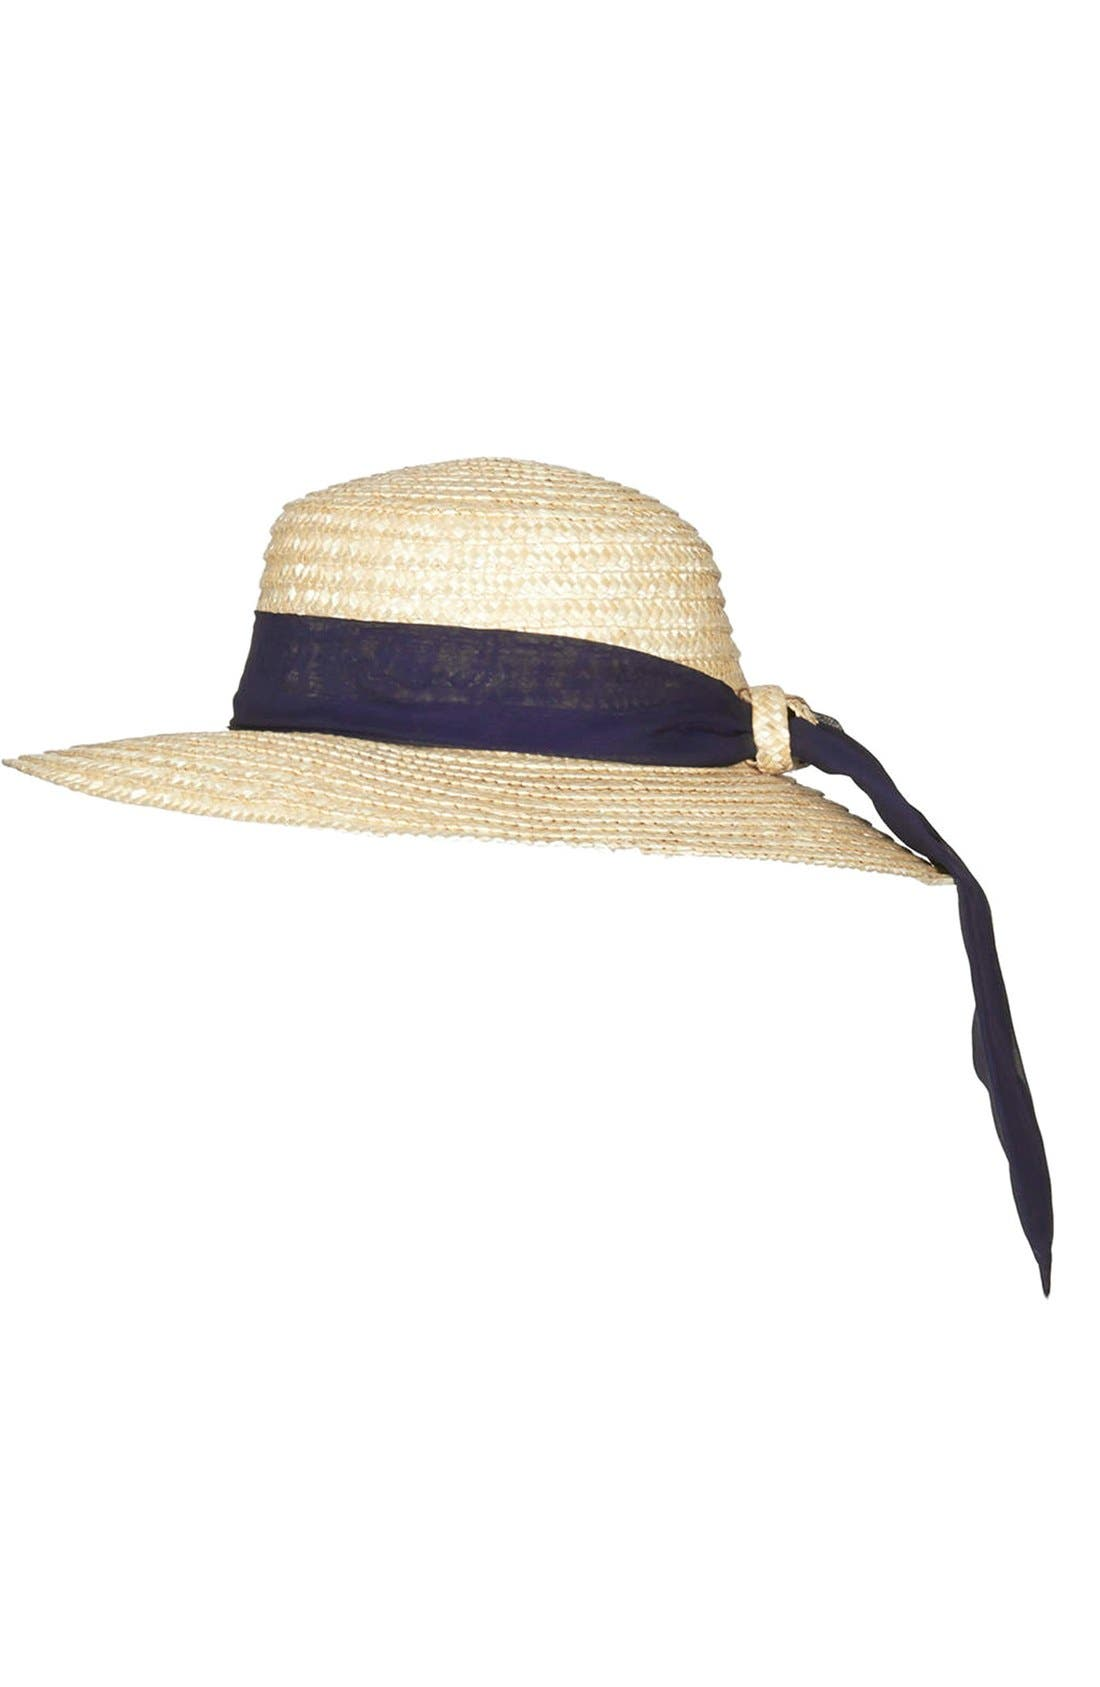 Main Image - Topshop Straw Boater Hat